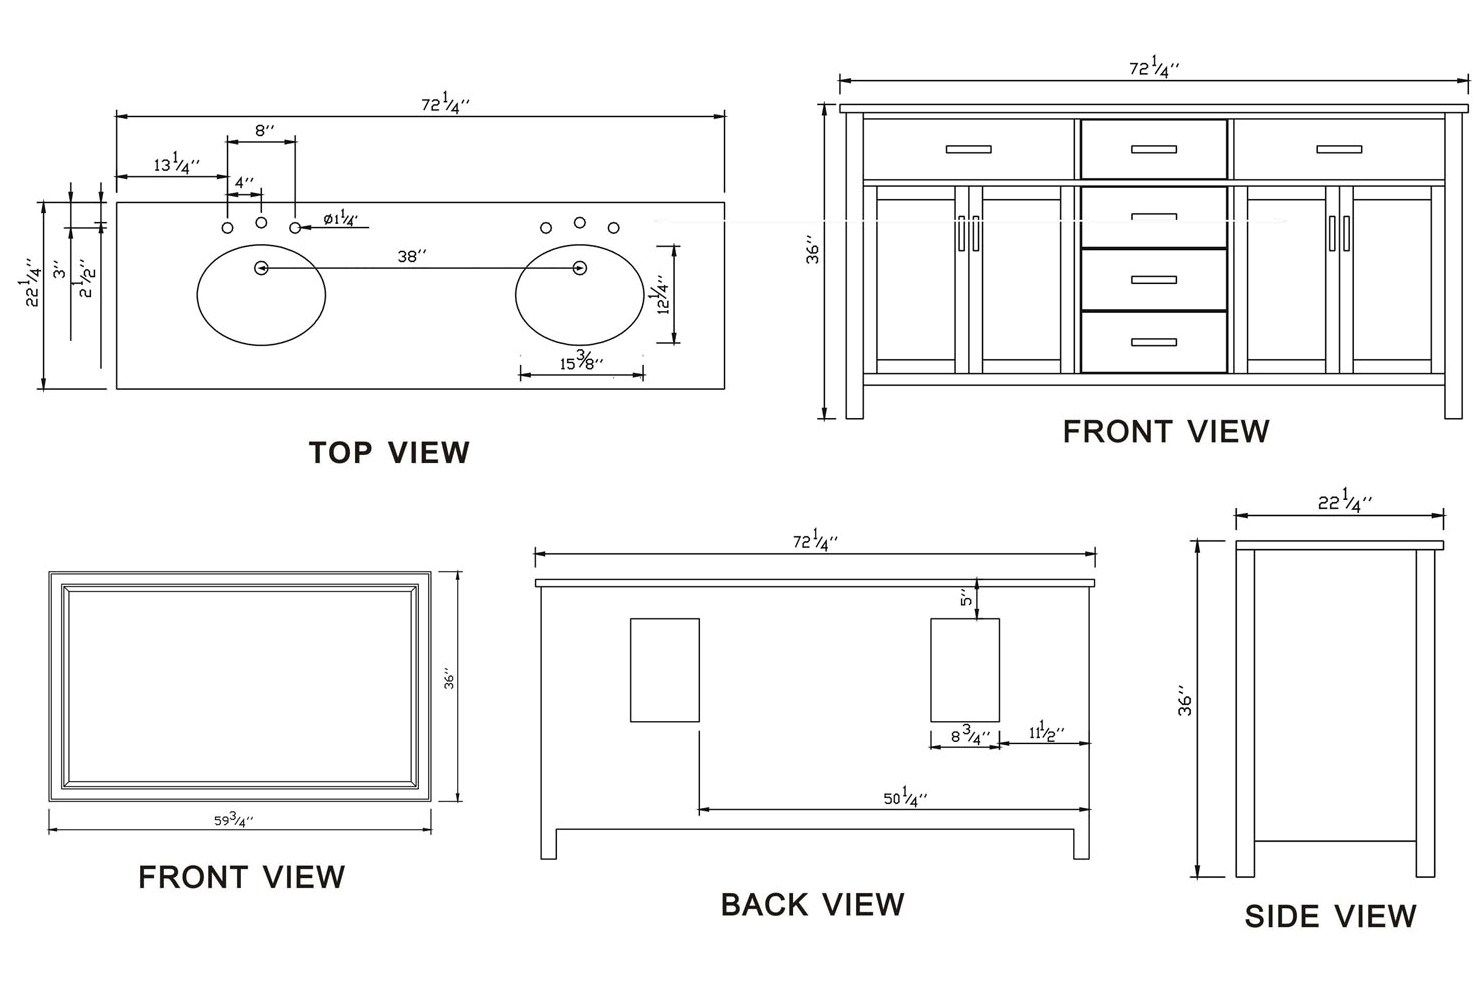 small bathroom sink dimensions design 9 images of bathroom vanity sizes - Bathroom Sink Dimensions